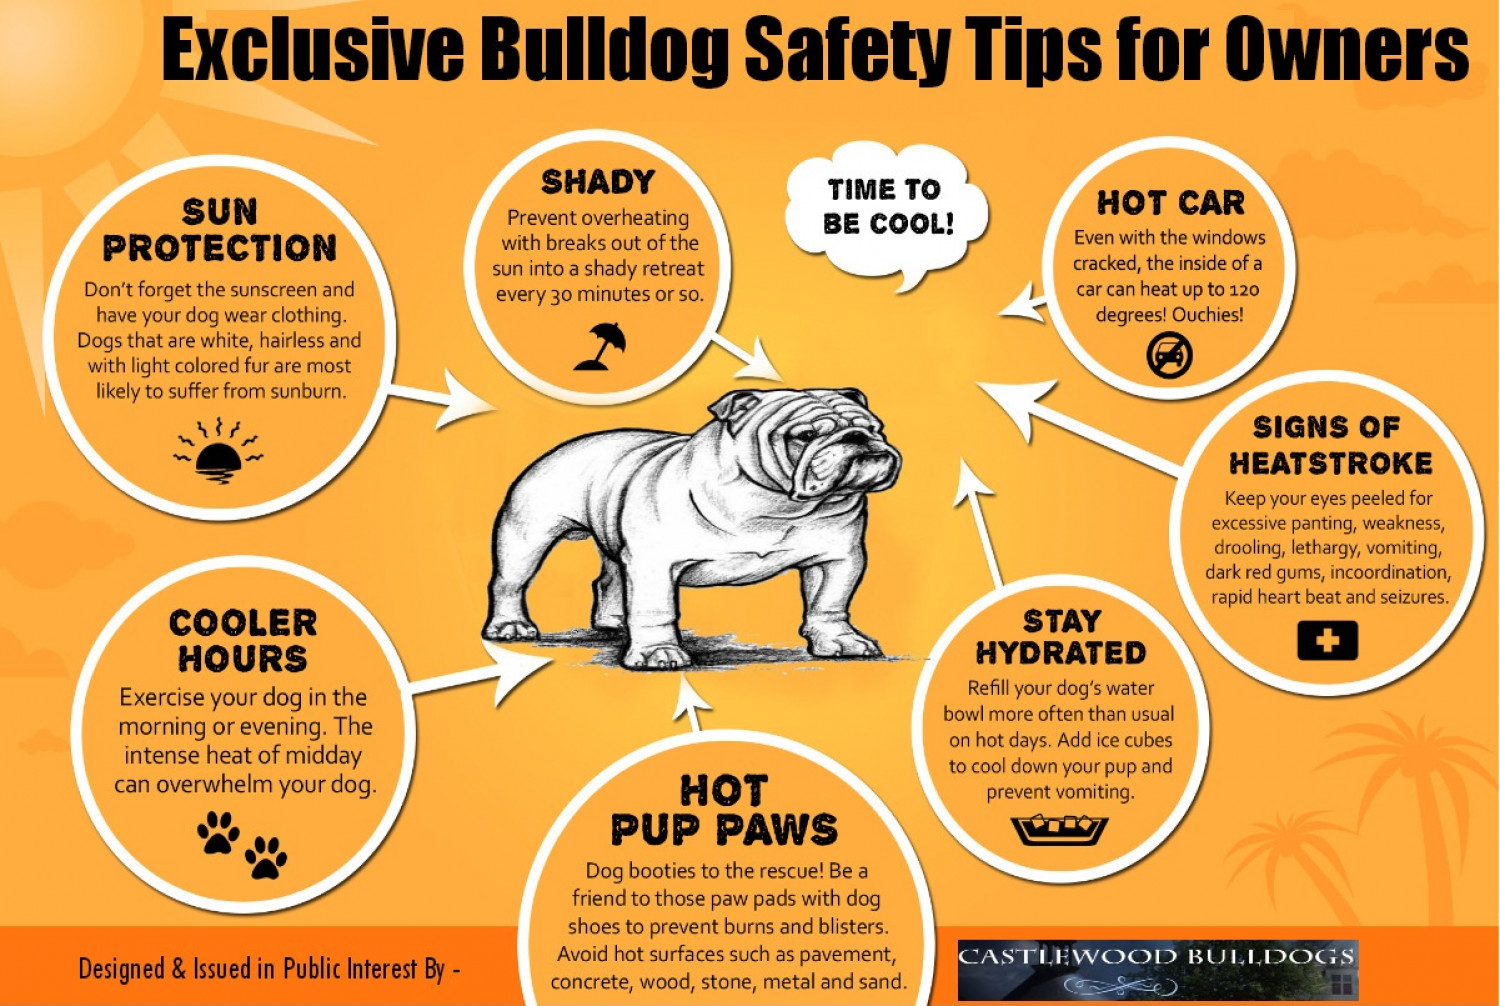 Exclusive Bulldog Safety Tips for Owners Infographic